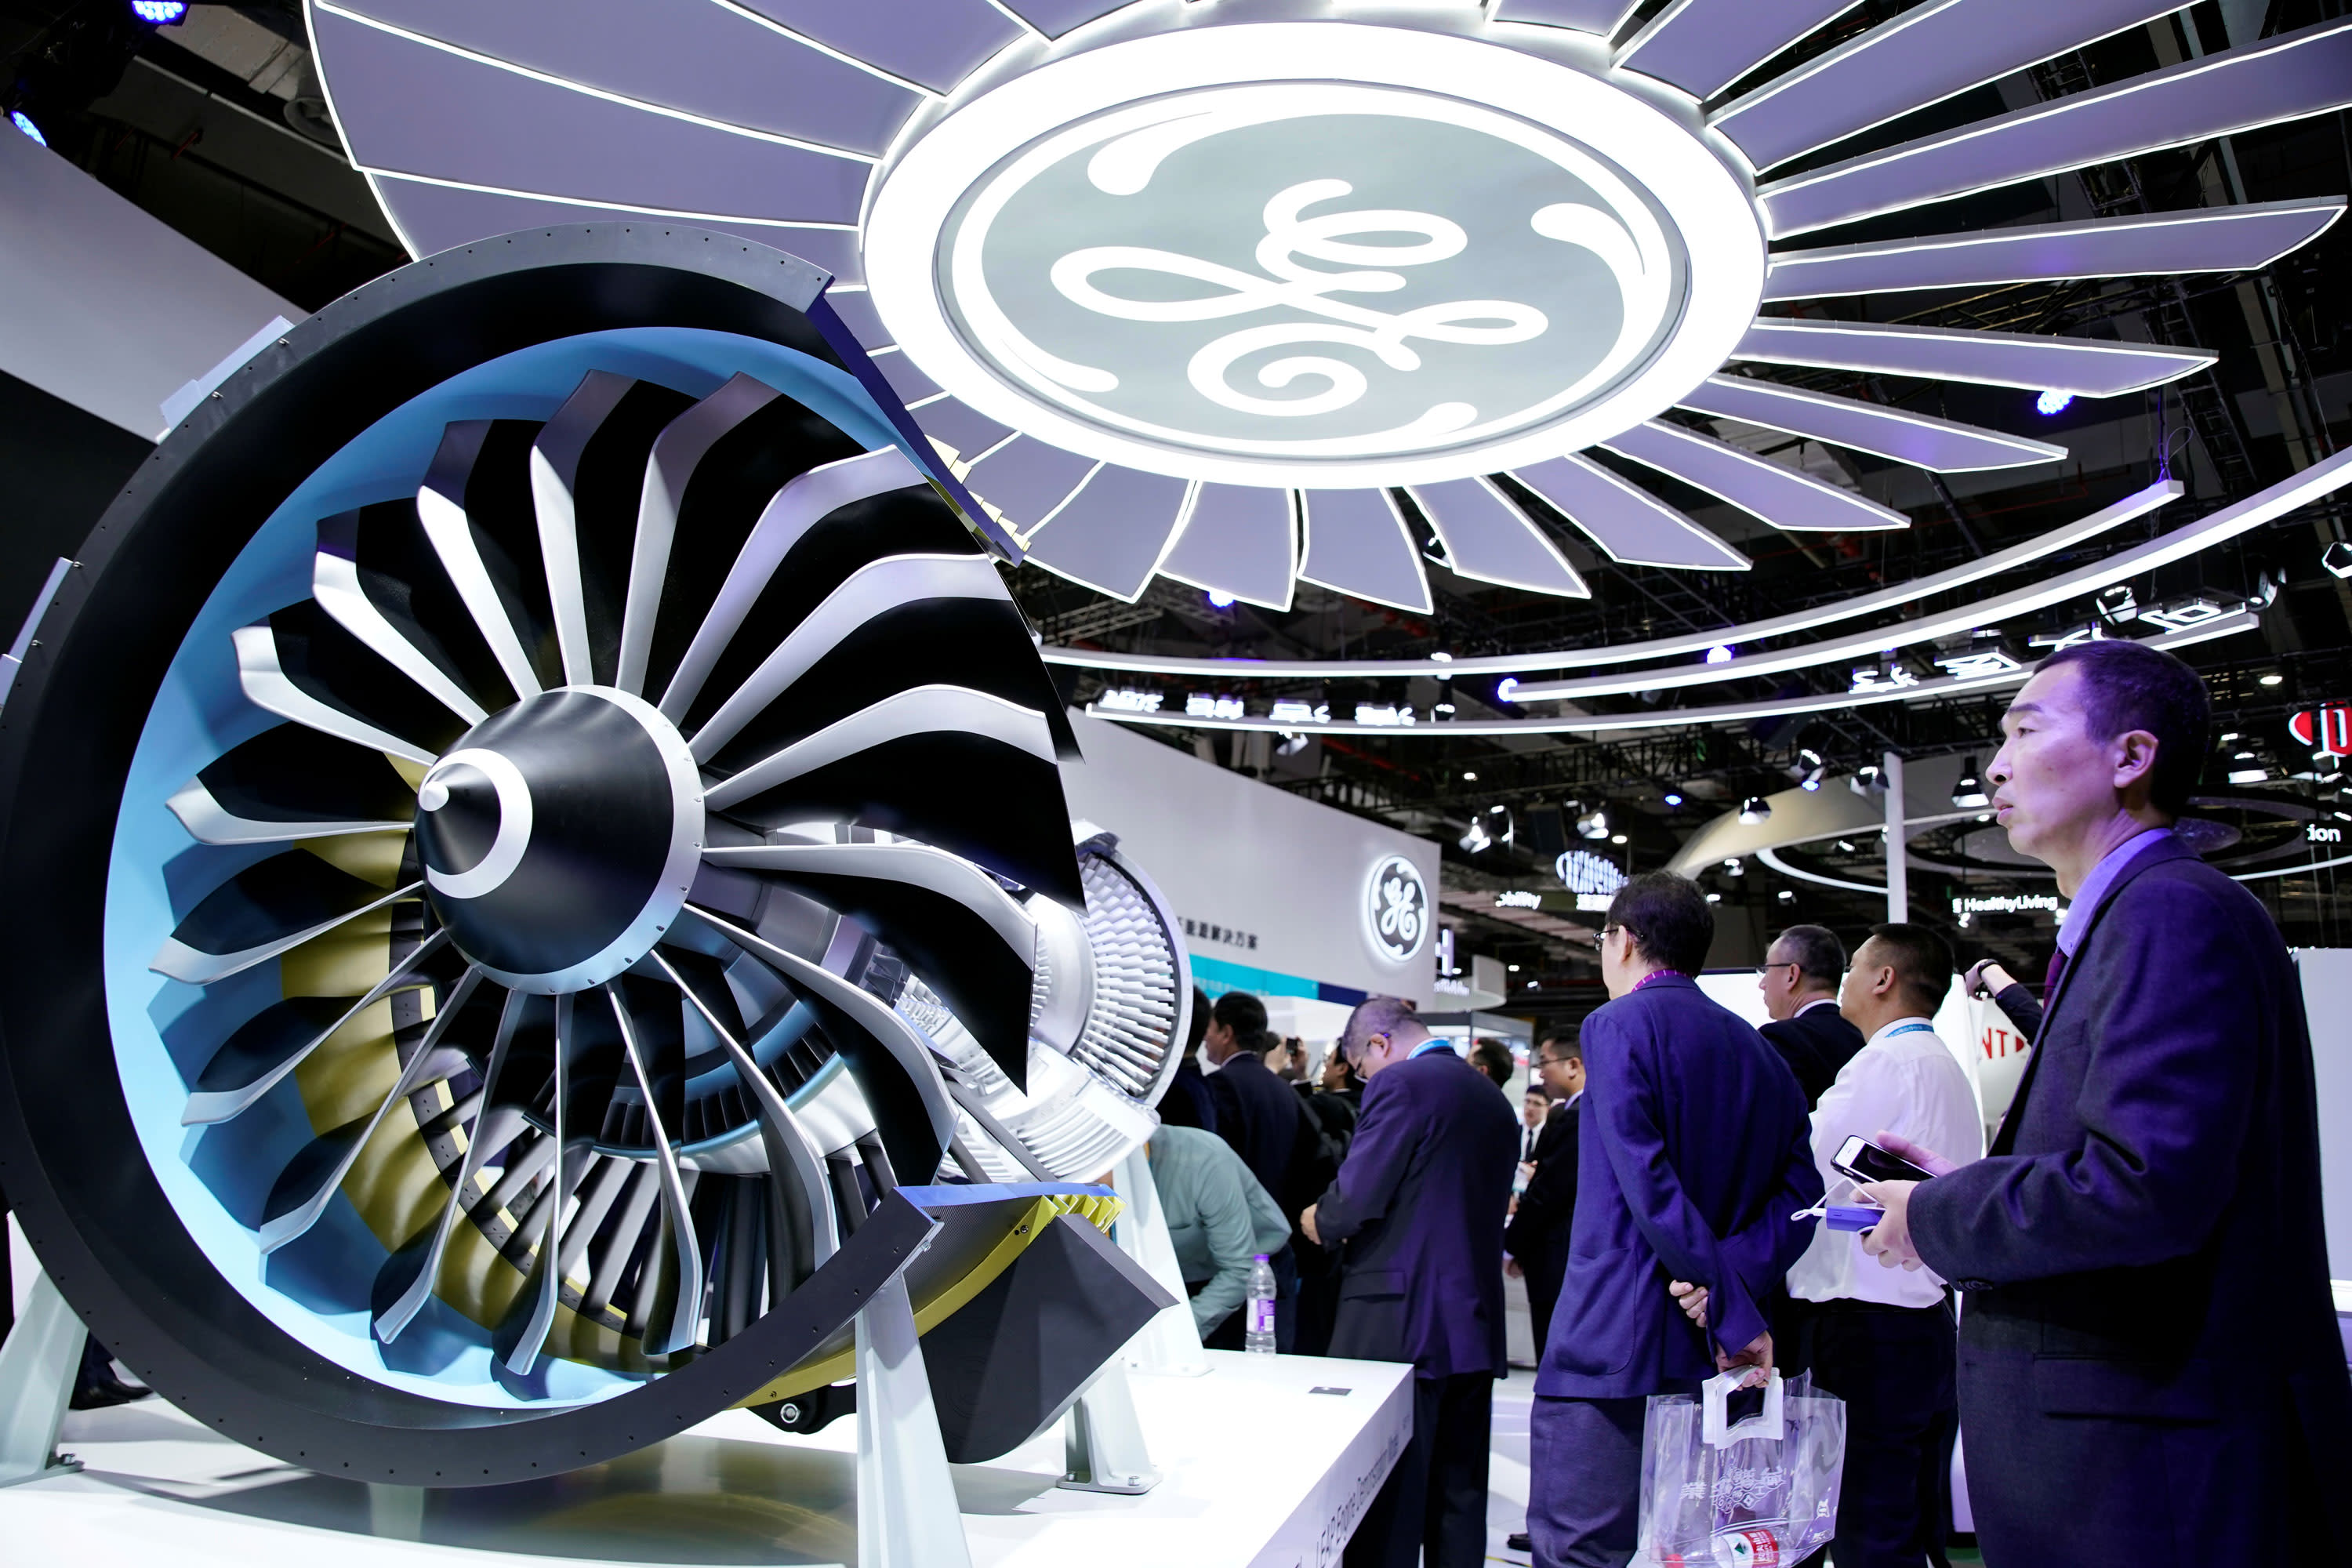 GE shares rise after new analyst at UBS gives stock a buy rating and predicts a big 2020 rebound